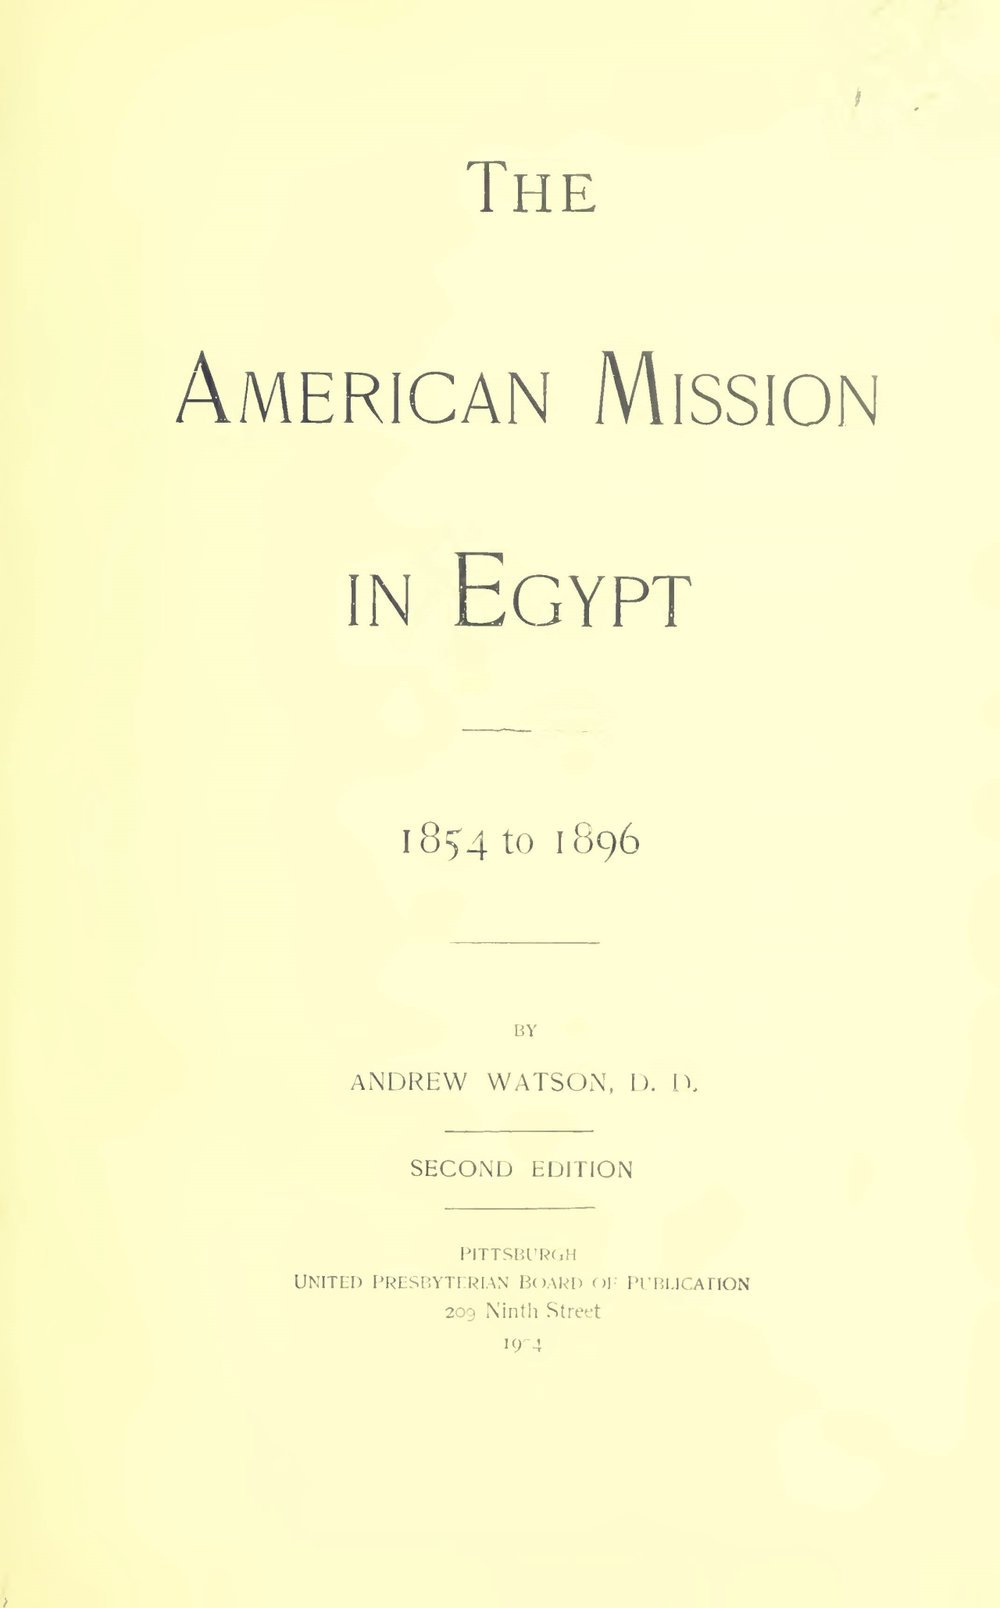 Watson, Andrew, The American Mission in Egypt Title Page.jpg